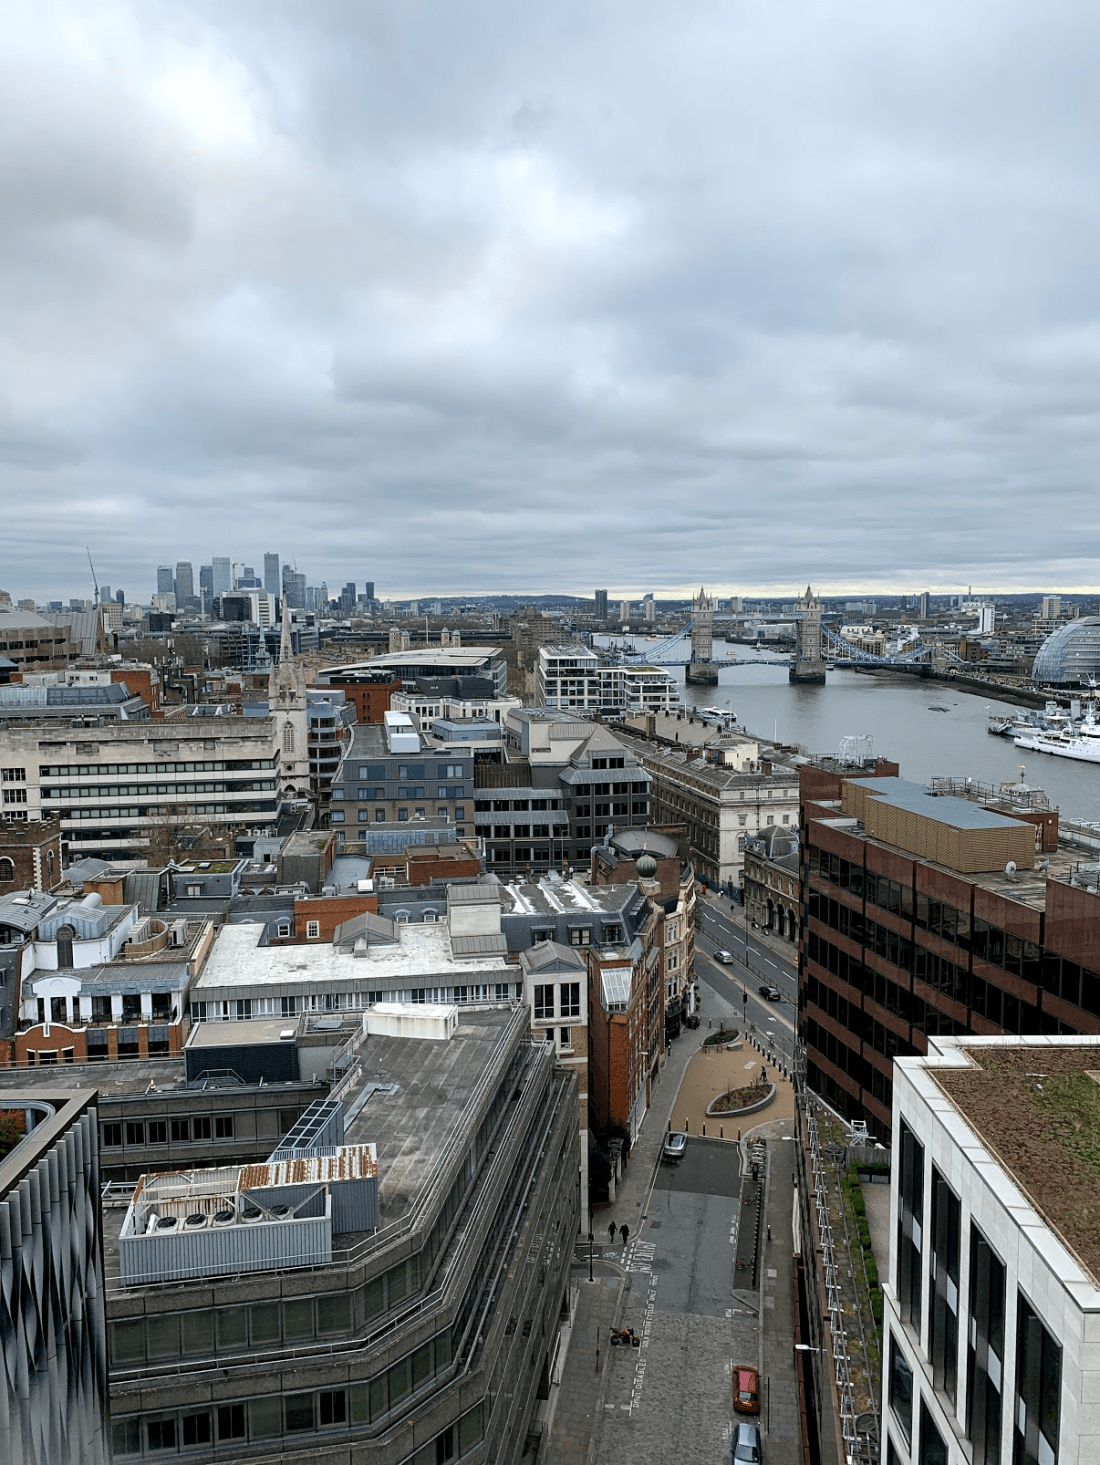 The view from the top of Monument in London